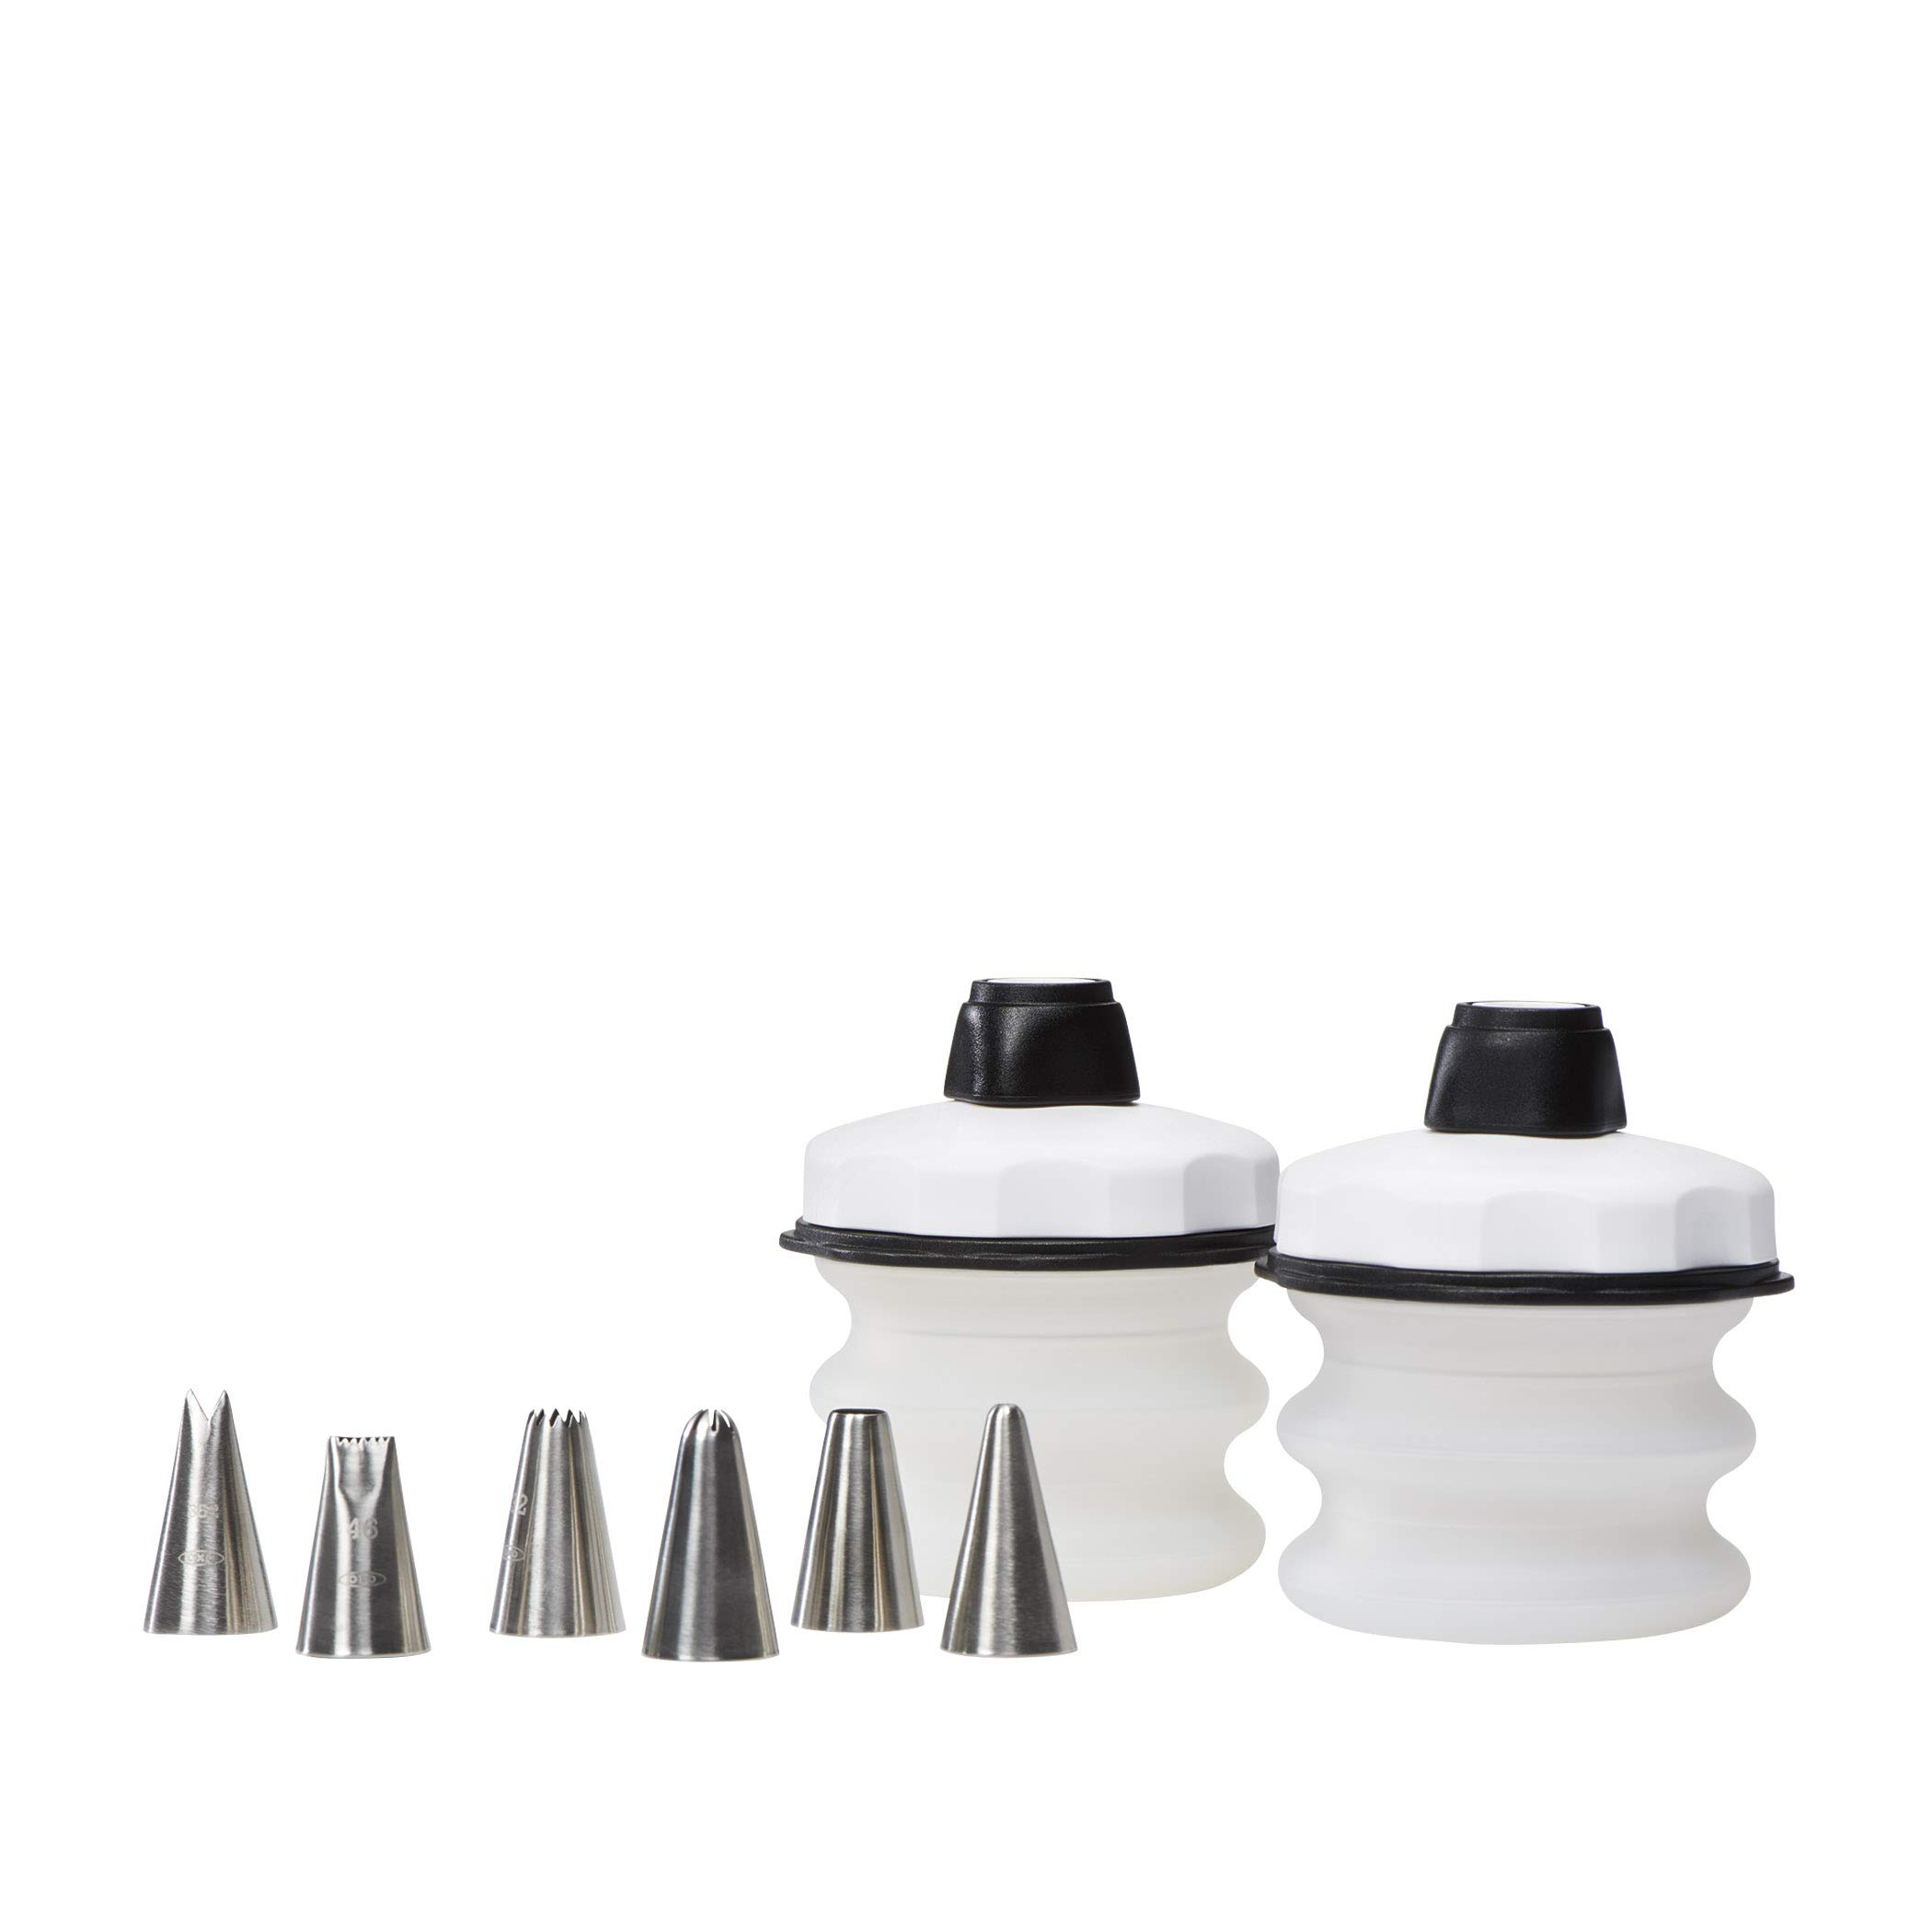 OXO 11132900 Good Grips Baker's 4-Piece Silicone Decorating Bottle Kit, Clear,Black